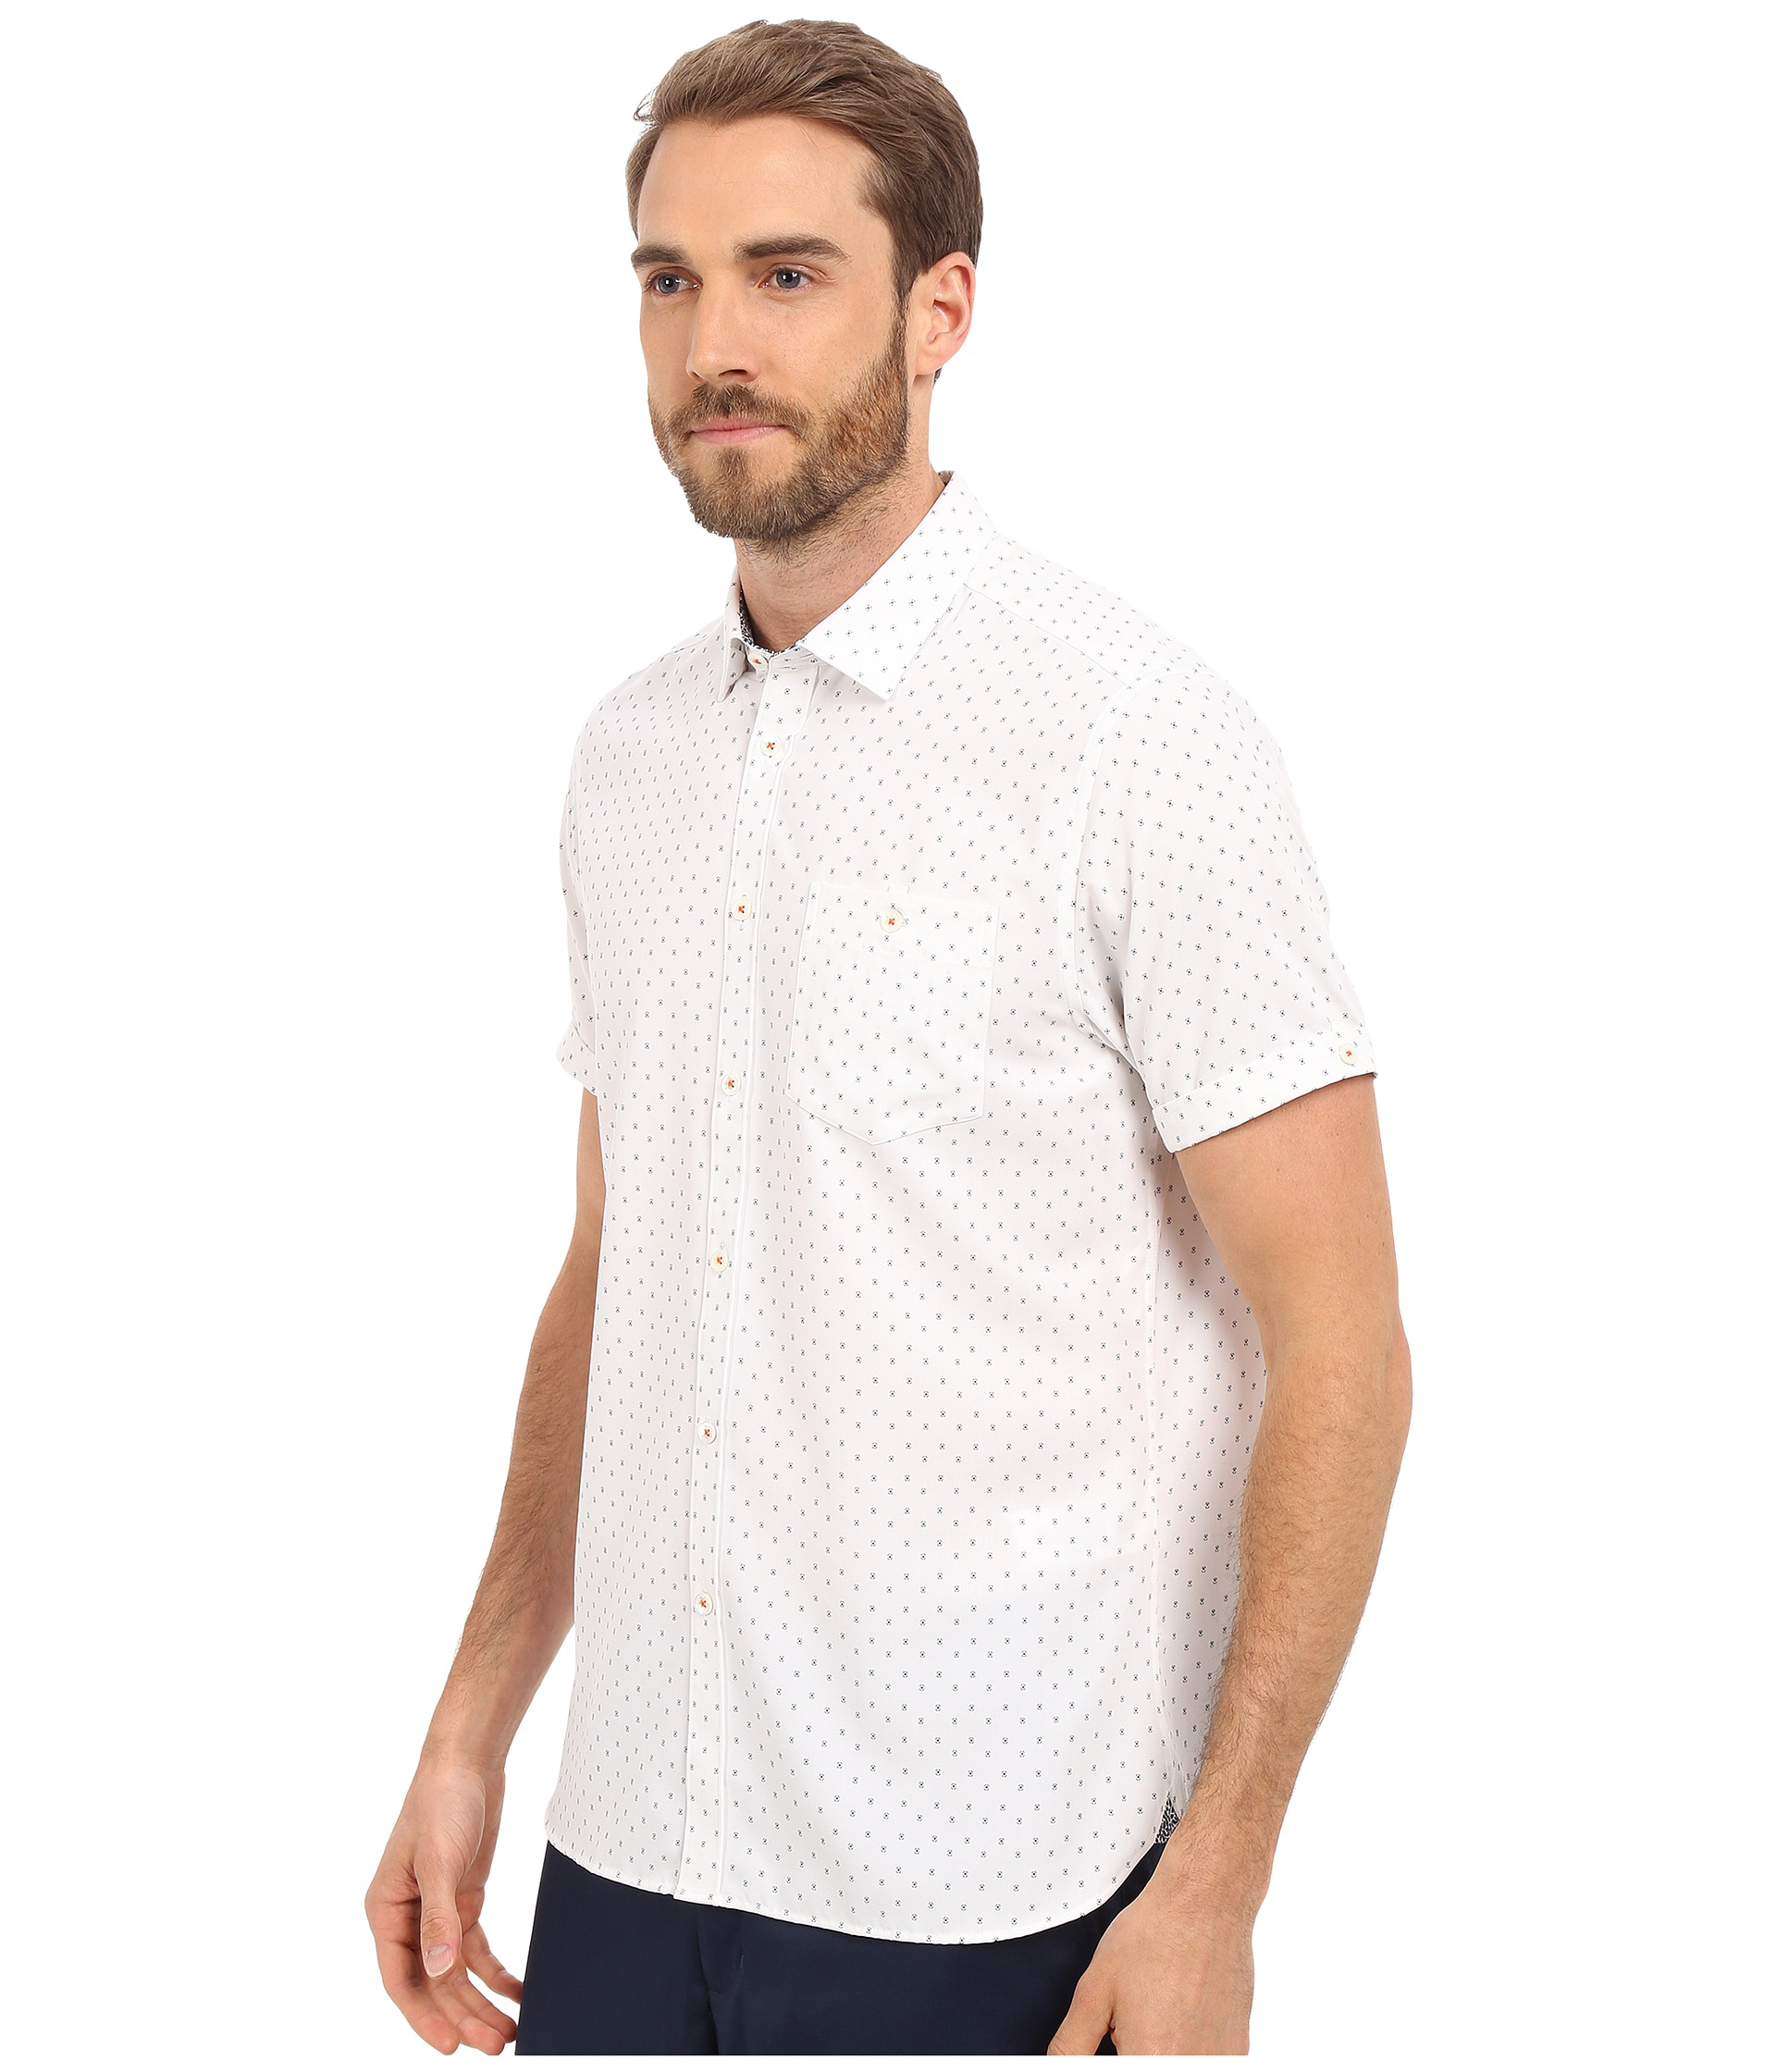 b89250a45a96 Lyst - Ted Baker Everyone Short Sleeve Modal Shirt in White for Men